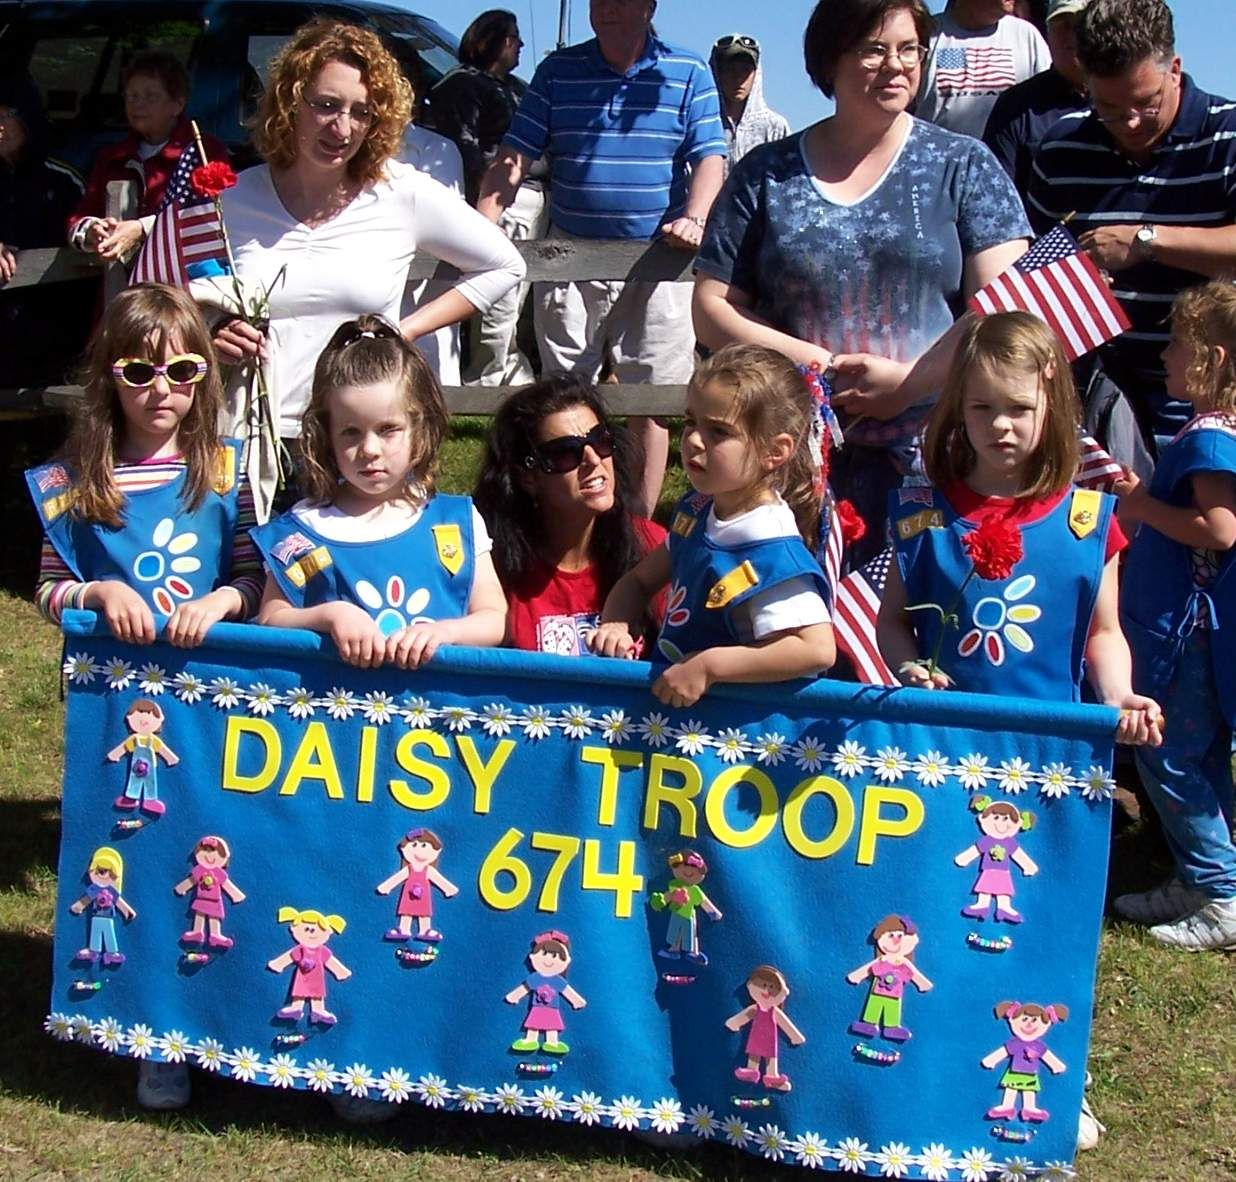 Cute parade banner idea for Girl Scout Daisies - Daisy Troop